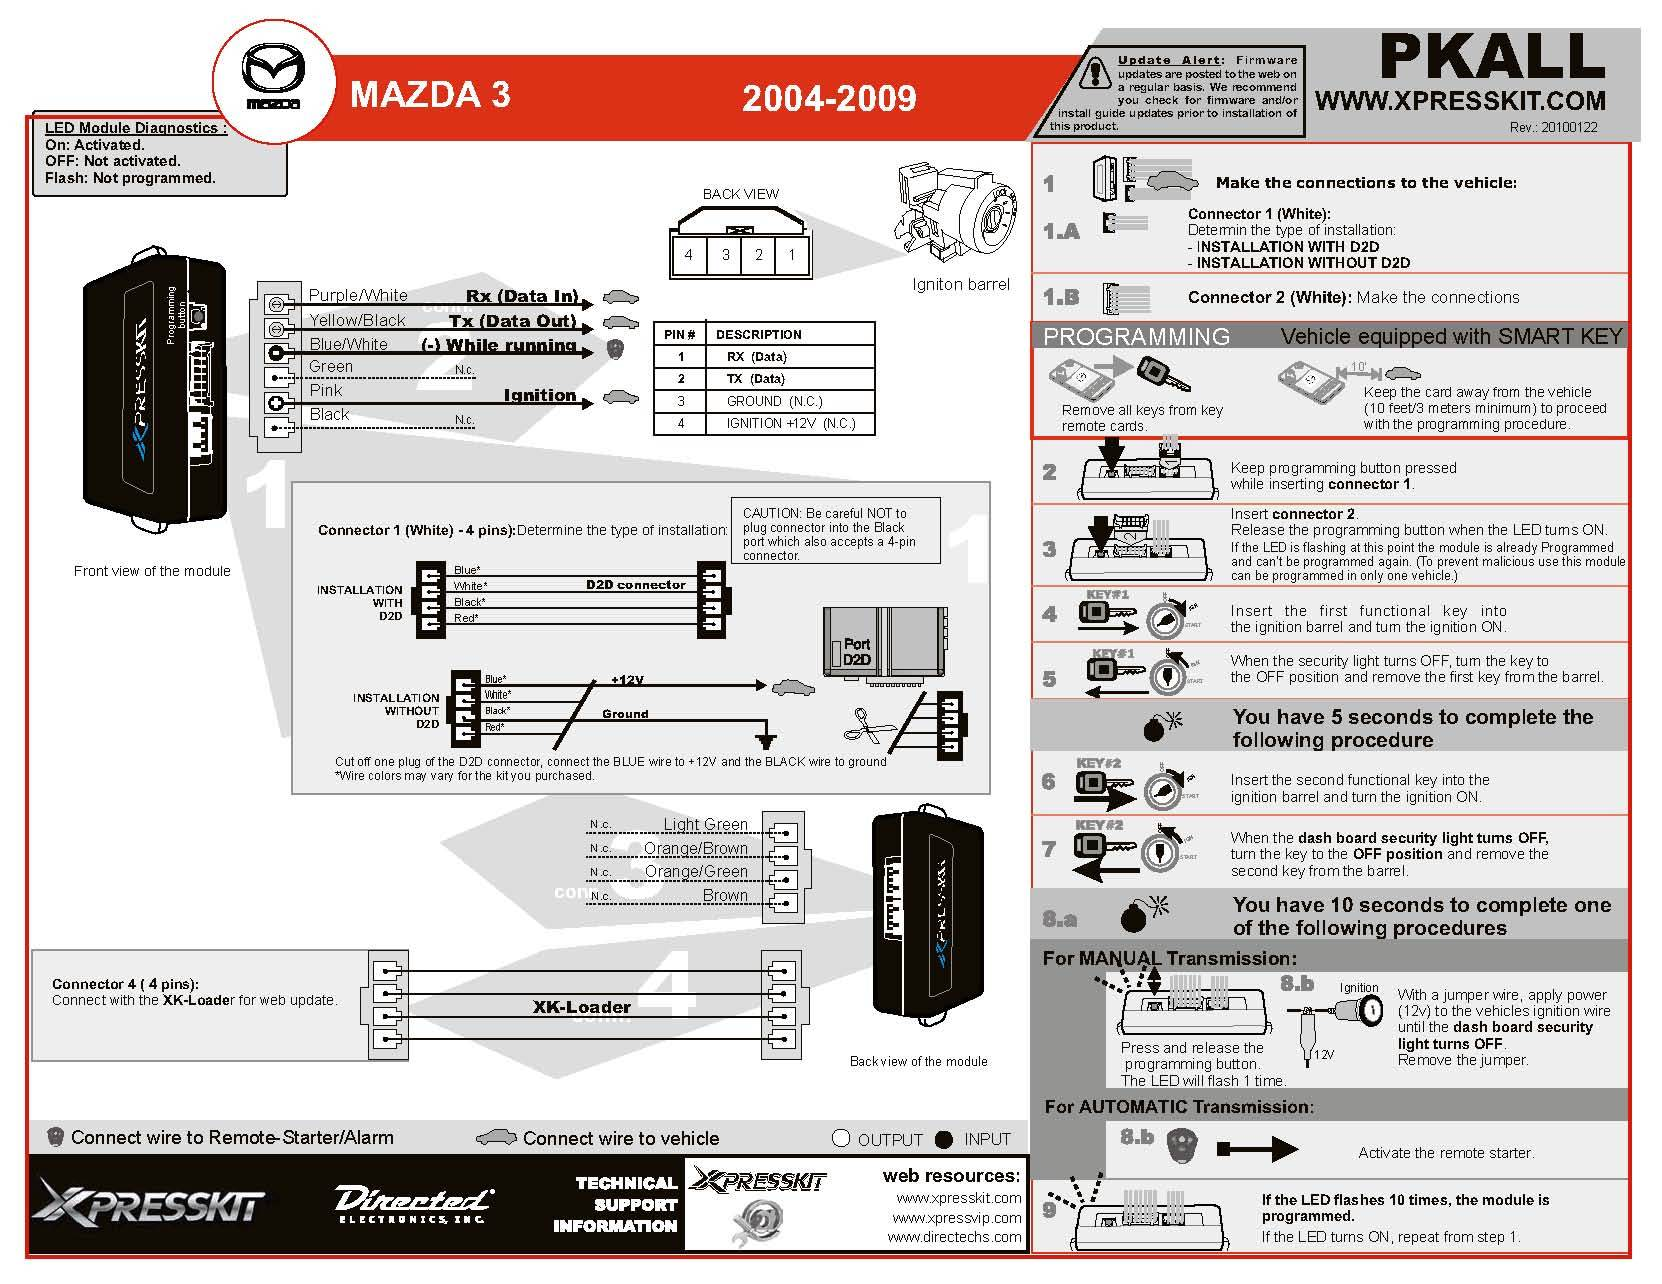 pkallinstallrefpage1 wiring information needed for remote start alarm install python alarm wiring diagram at nearapp.co